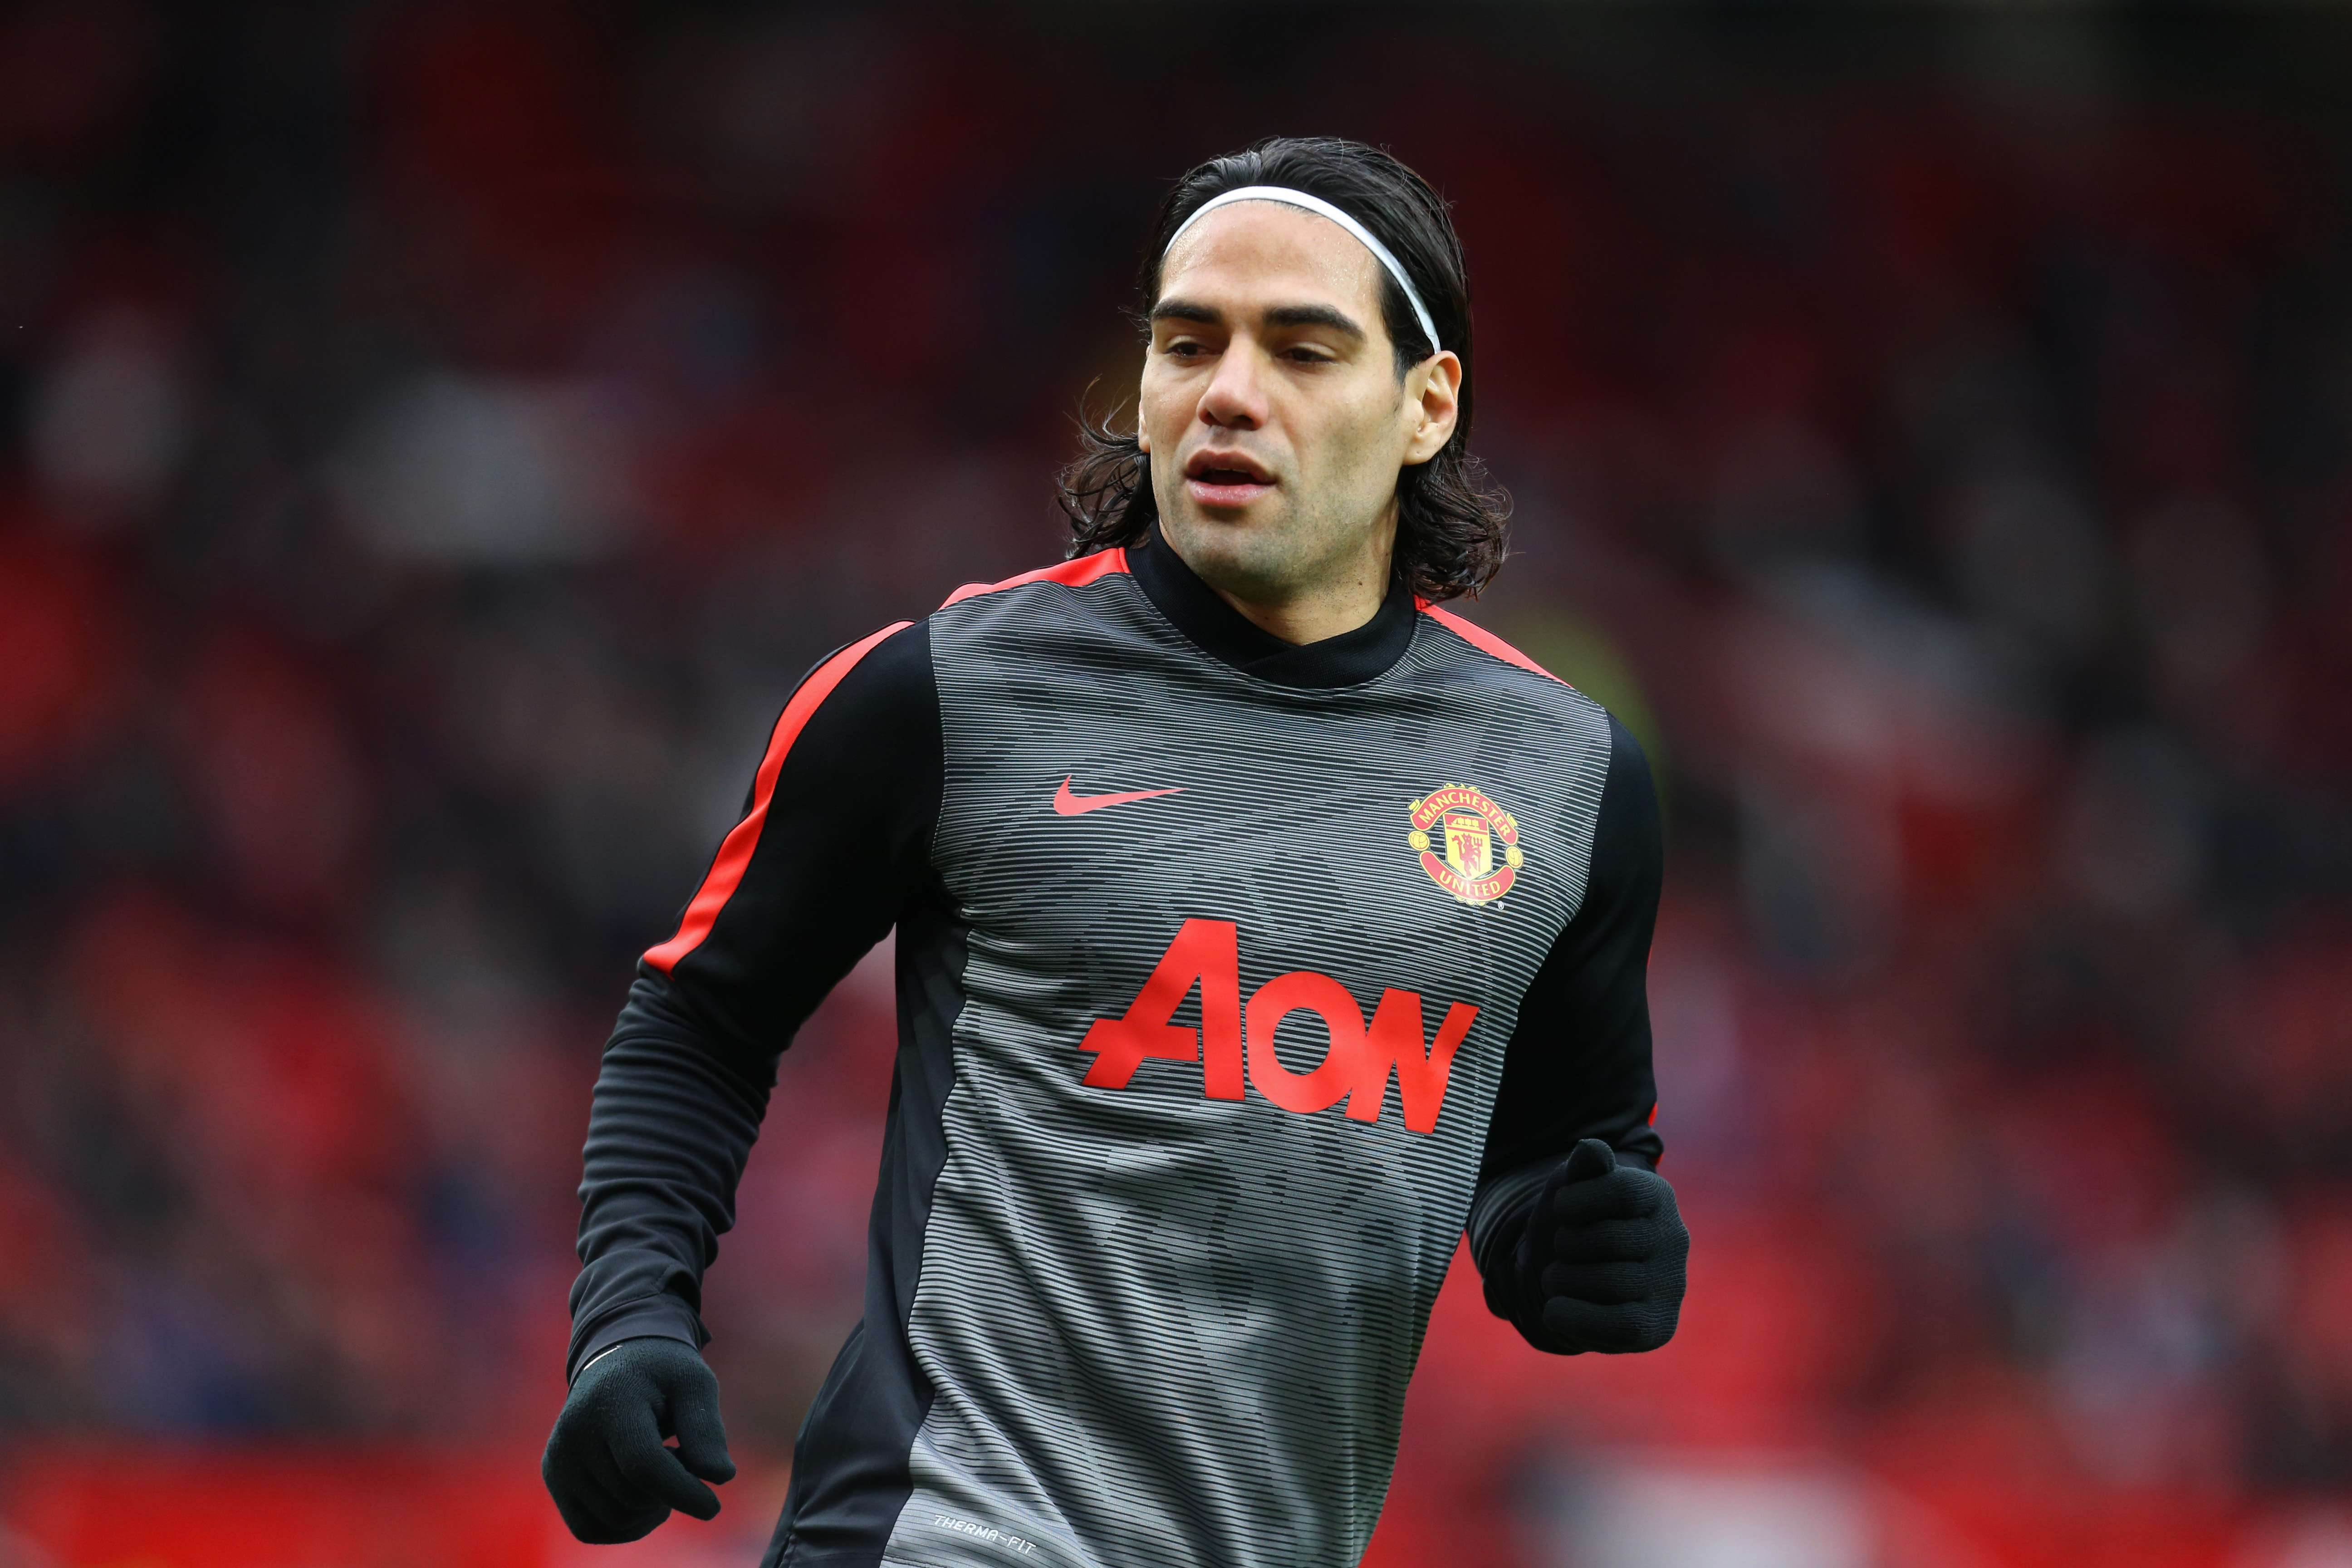 "Football - Manchester United v Sunderland - Barclays Premier League - Old Trafford - 28/2/15 Manchester United's Radamel Falcao warms up before the game Mandatory Credit: Action Images / Carl Recine Livepic EDITORIAL USE ONLY. No use with unauthorized audio, video, data, fixture lists, club/league logos or ""live"" services. Online in-match use limited to 45 images, no video emulation. No use in betting, games or single club/league/player publications. Please contact your account representative for further details. Foto: Carl Recine/REUTERS"